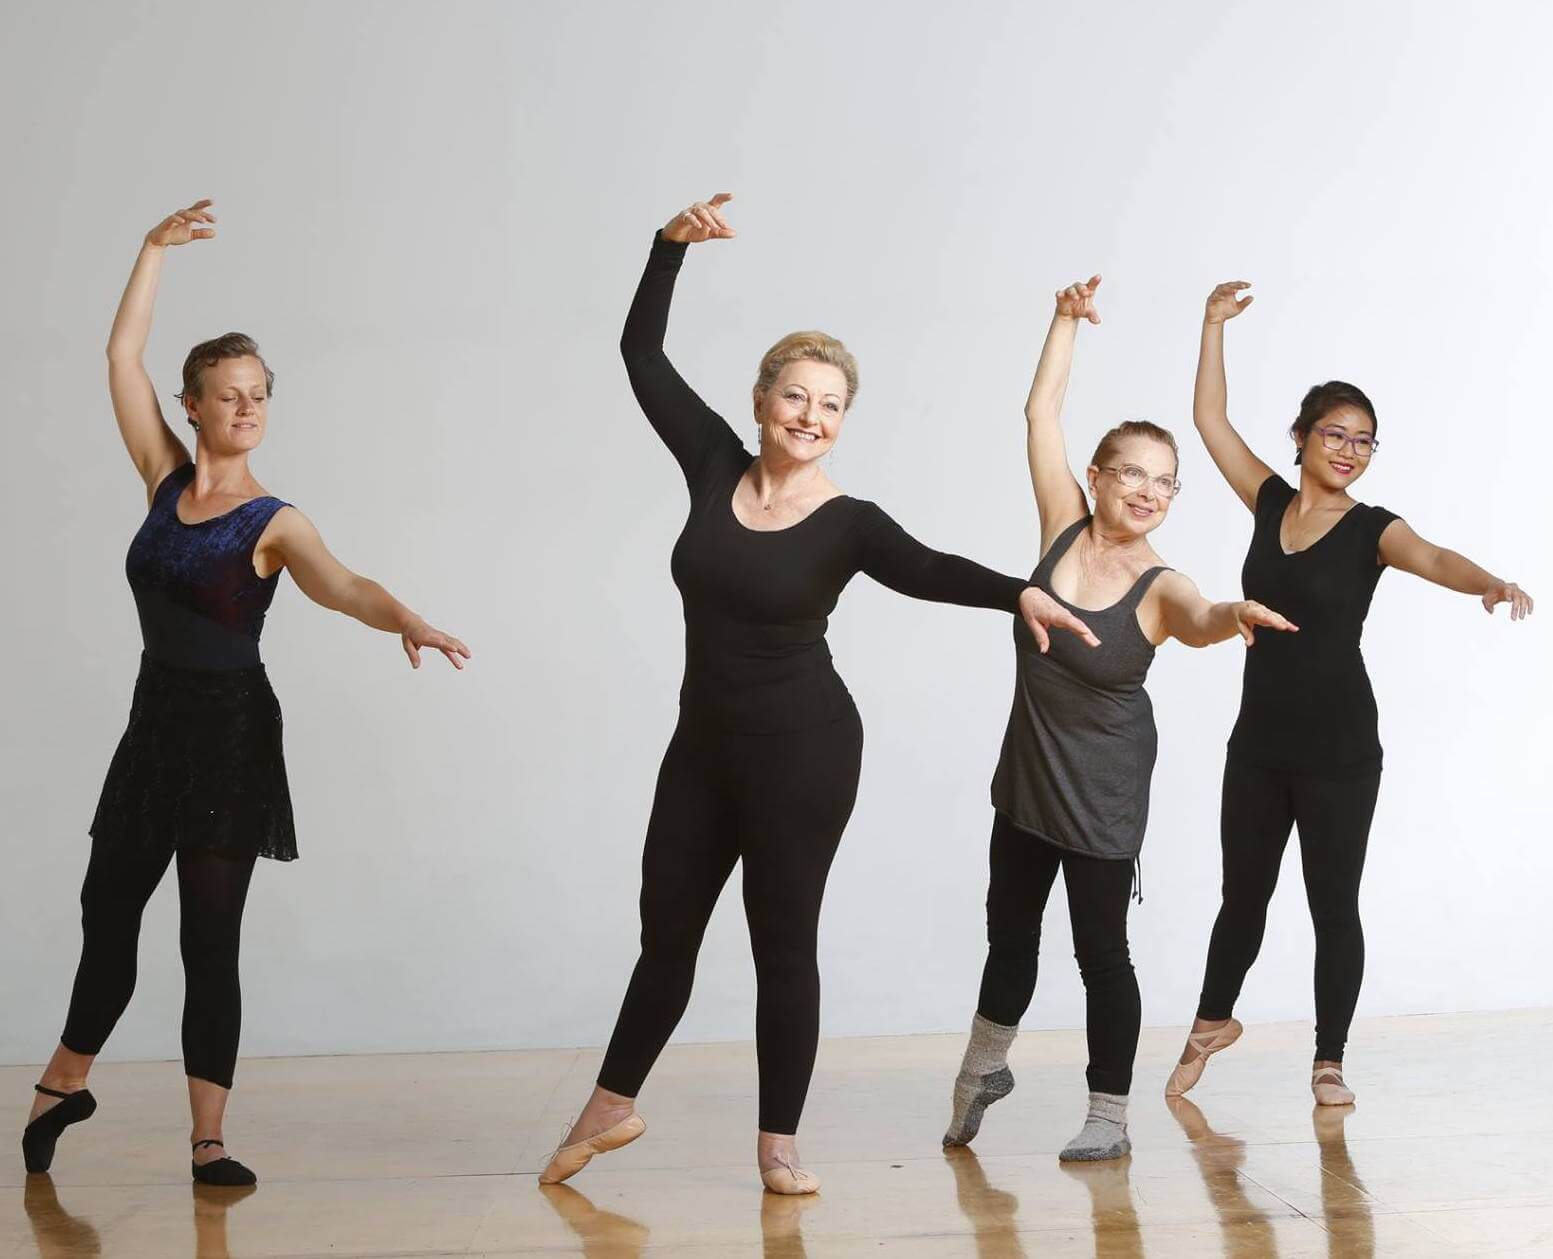 Adult dance classes - Oakland dance lessons at Danspace